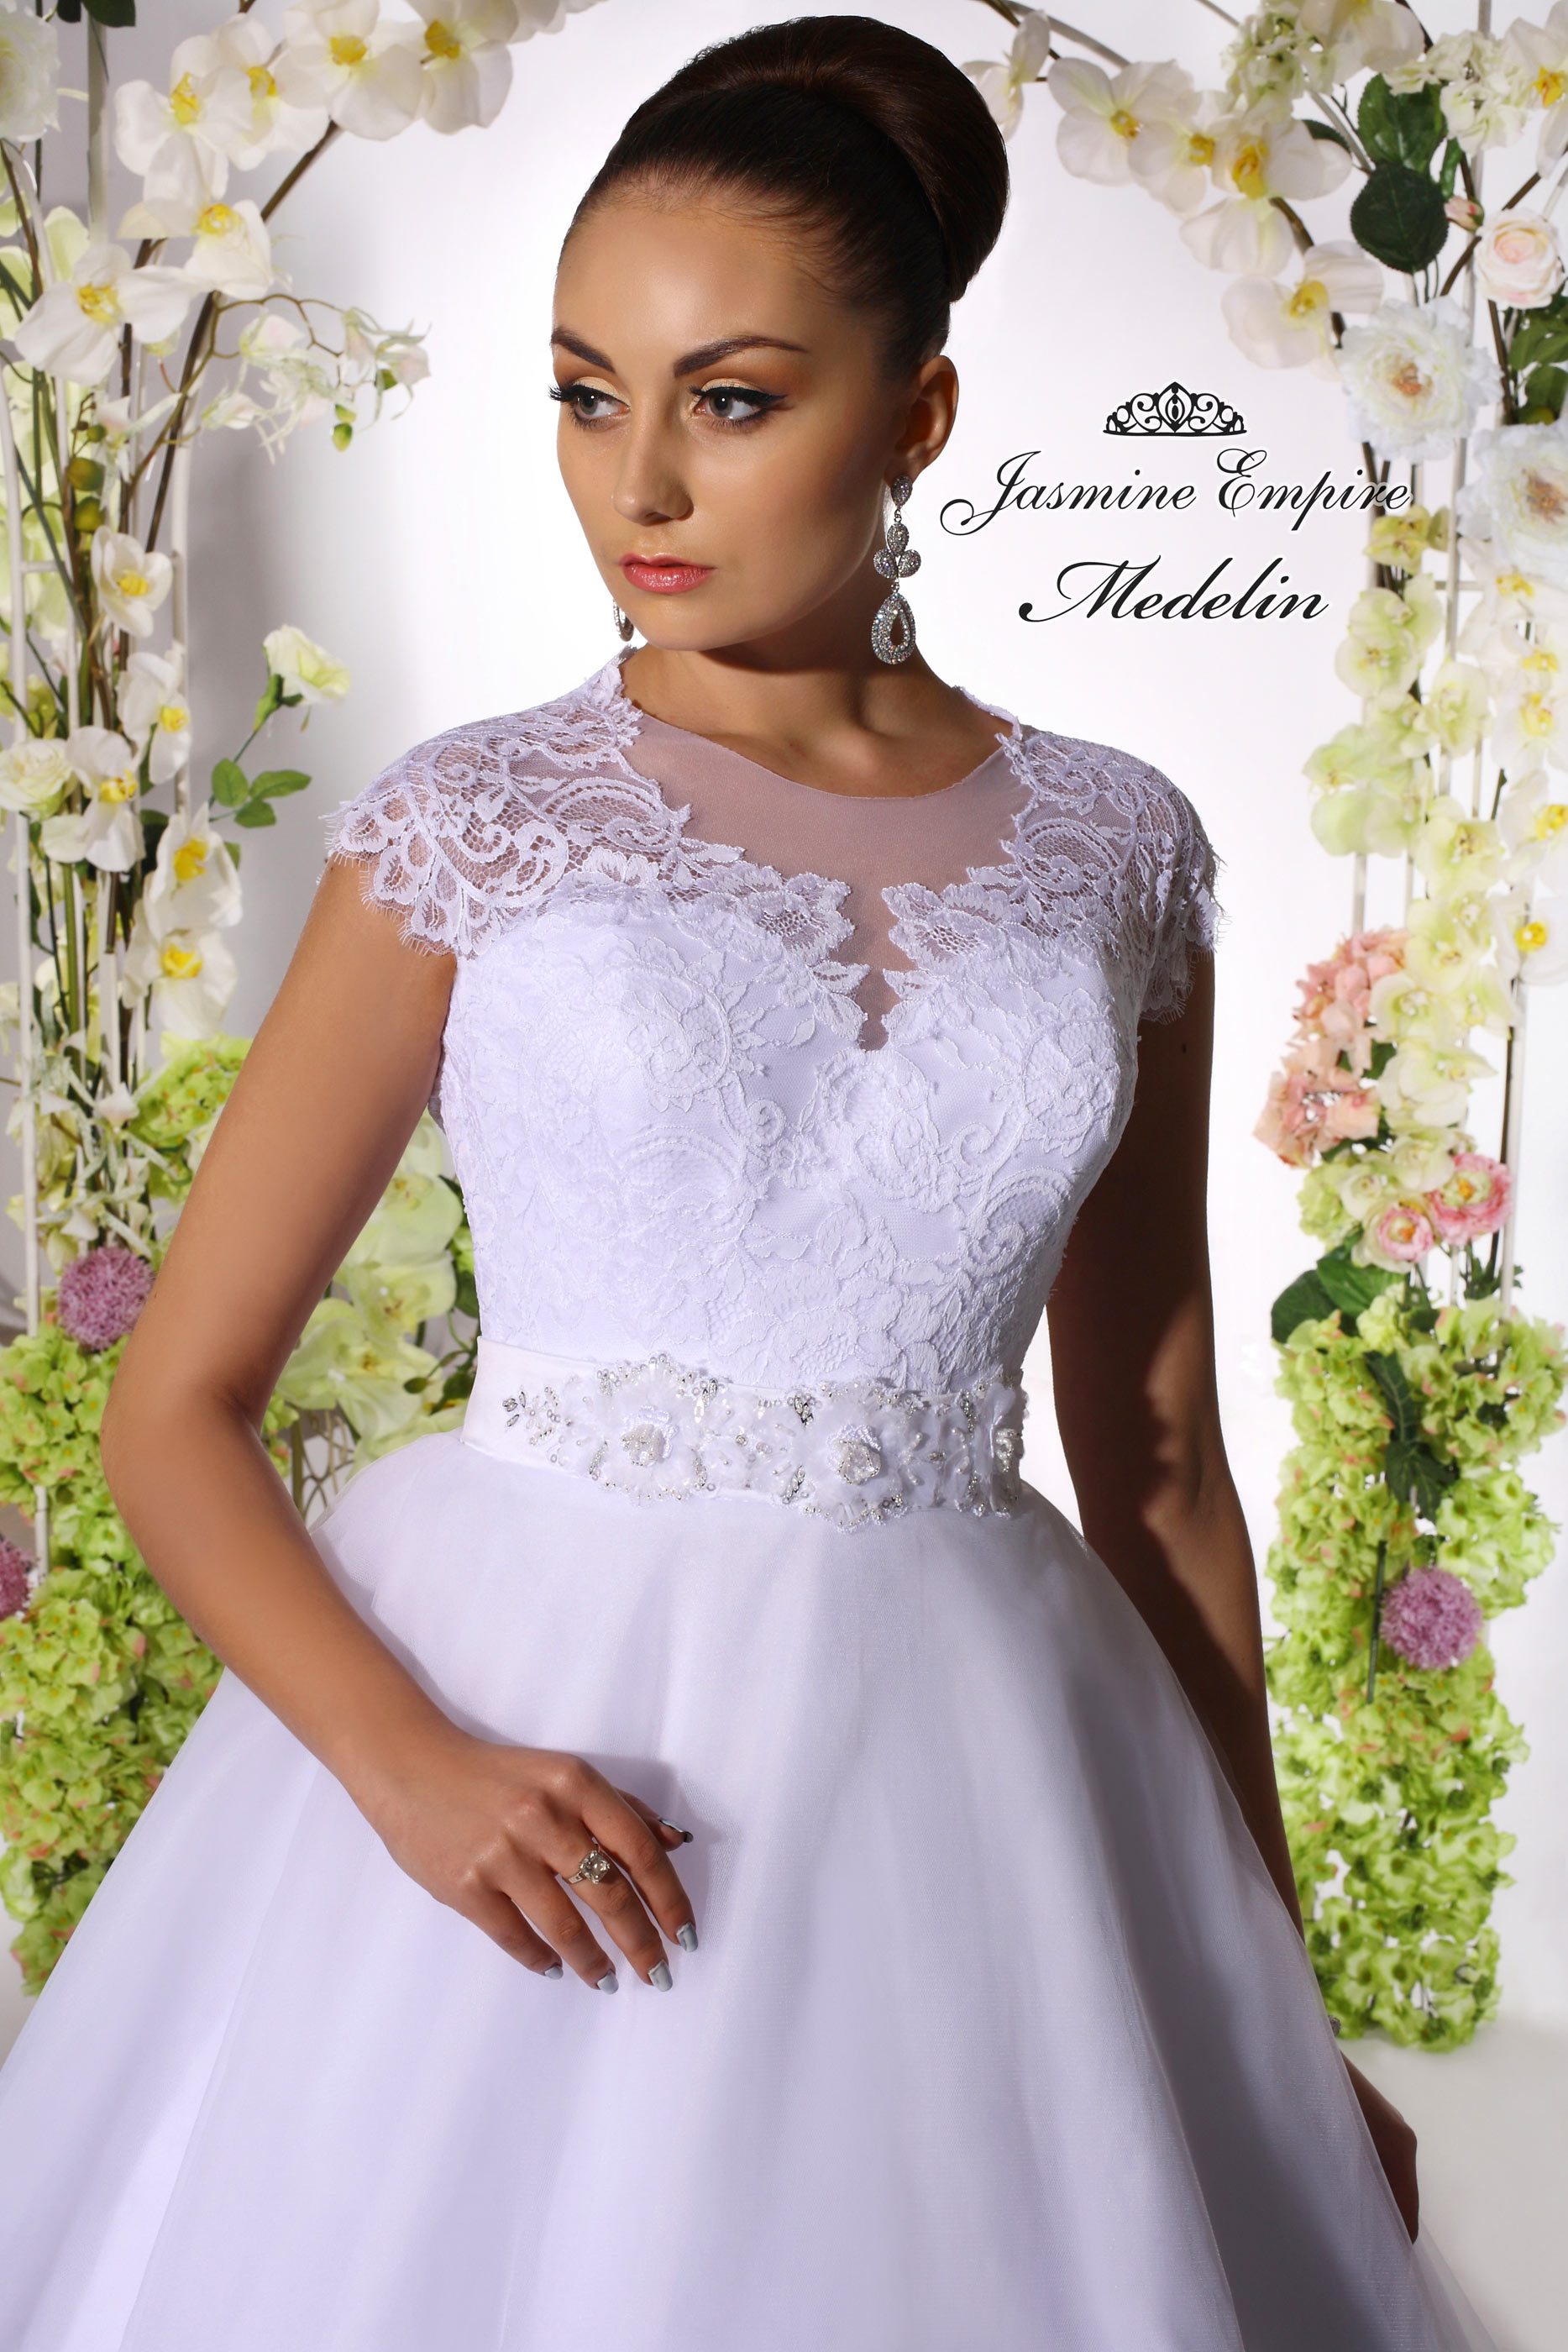 Wedding Dress Medelin  2